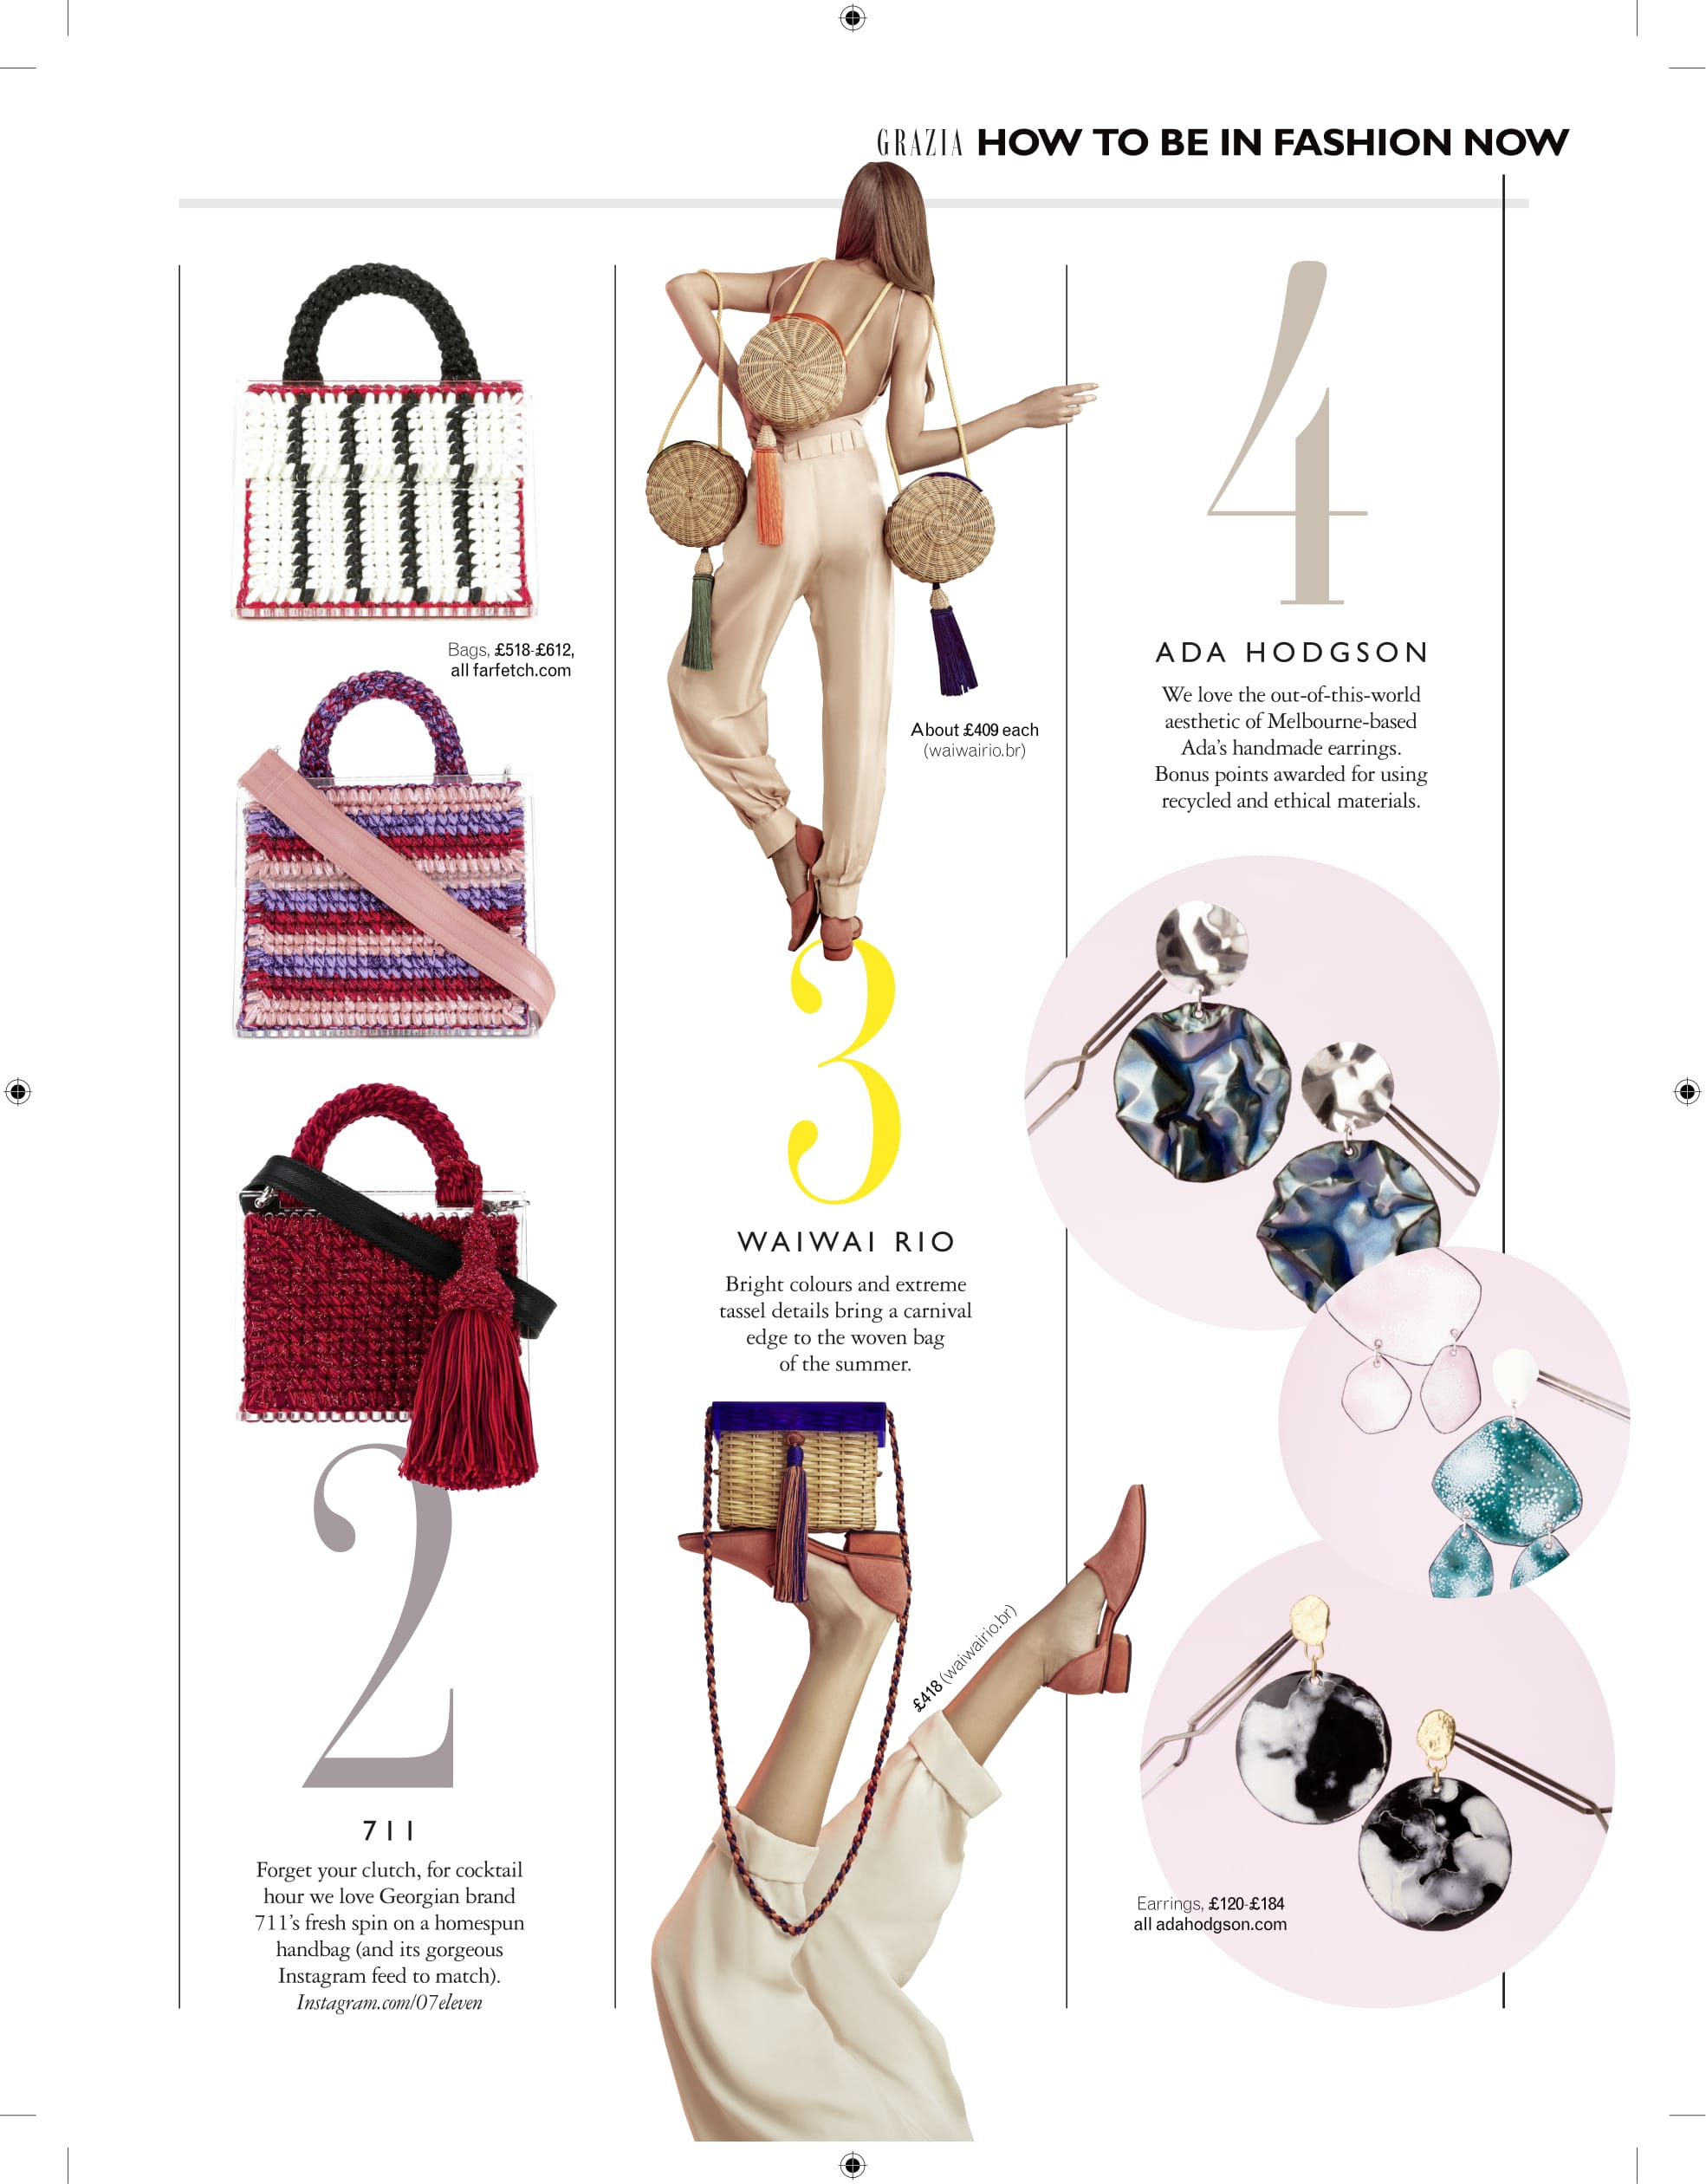 Fashion_Special New Brands to Shop 5pp_pdf_2-1.jpg